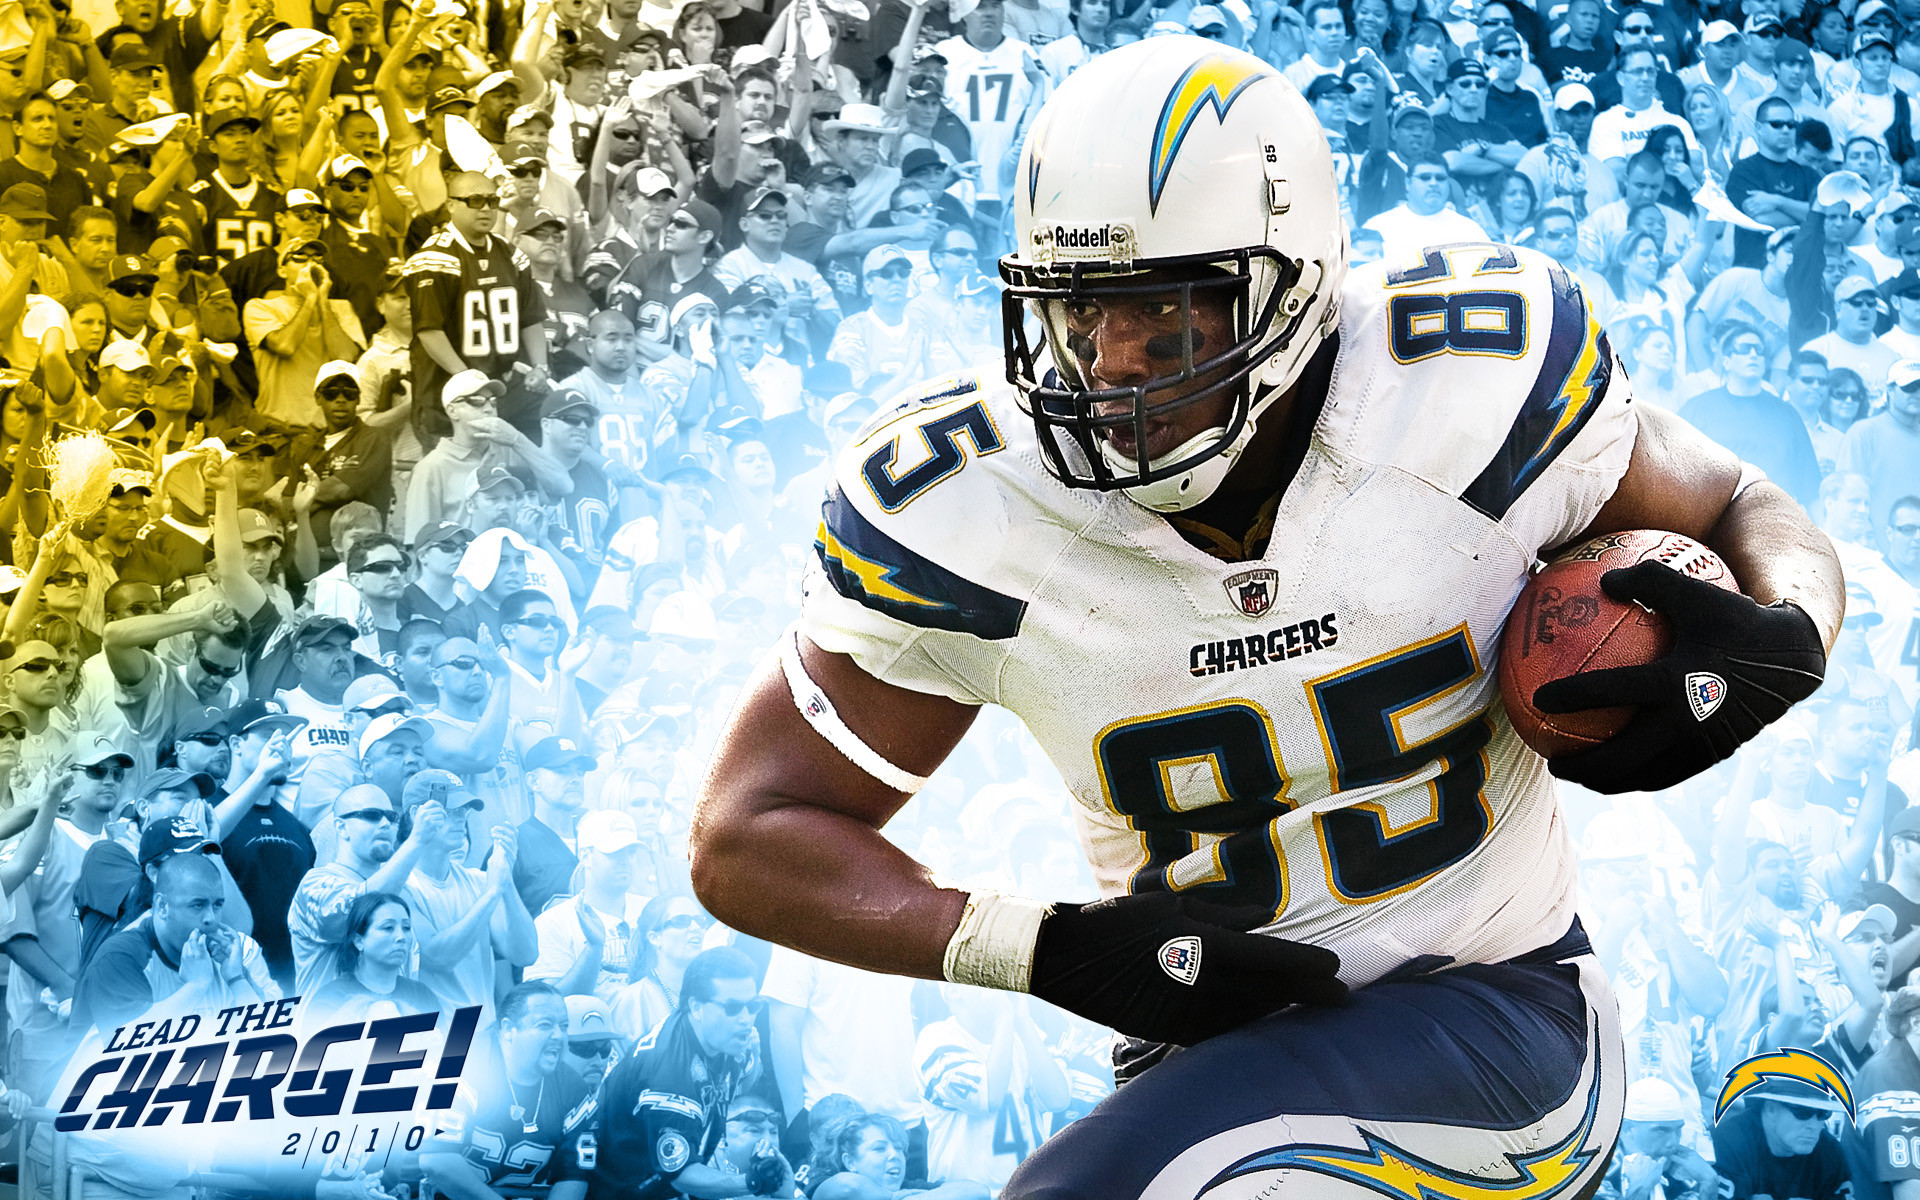 1920x1200 san diego chargers wallpaper 2010 Wallpaper HD